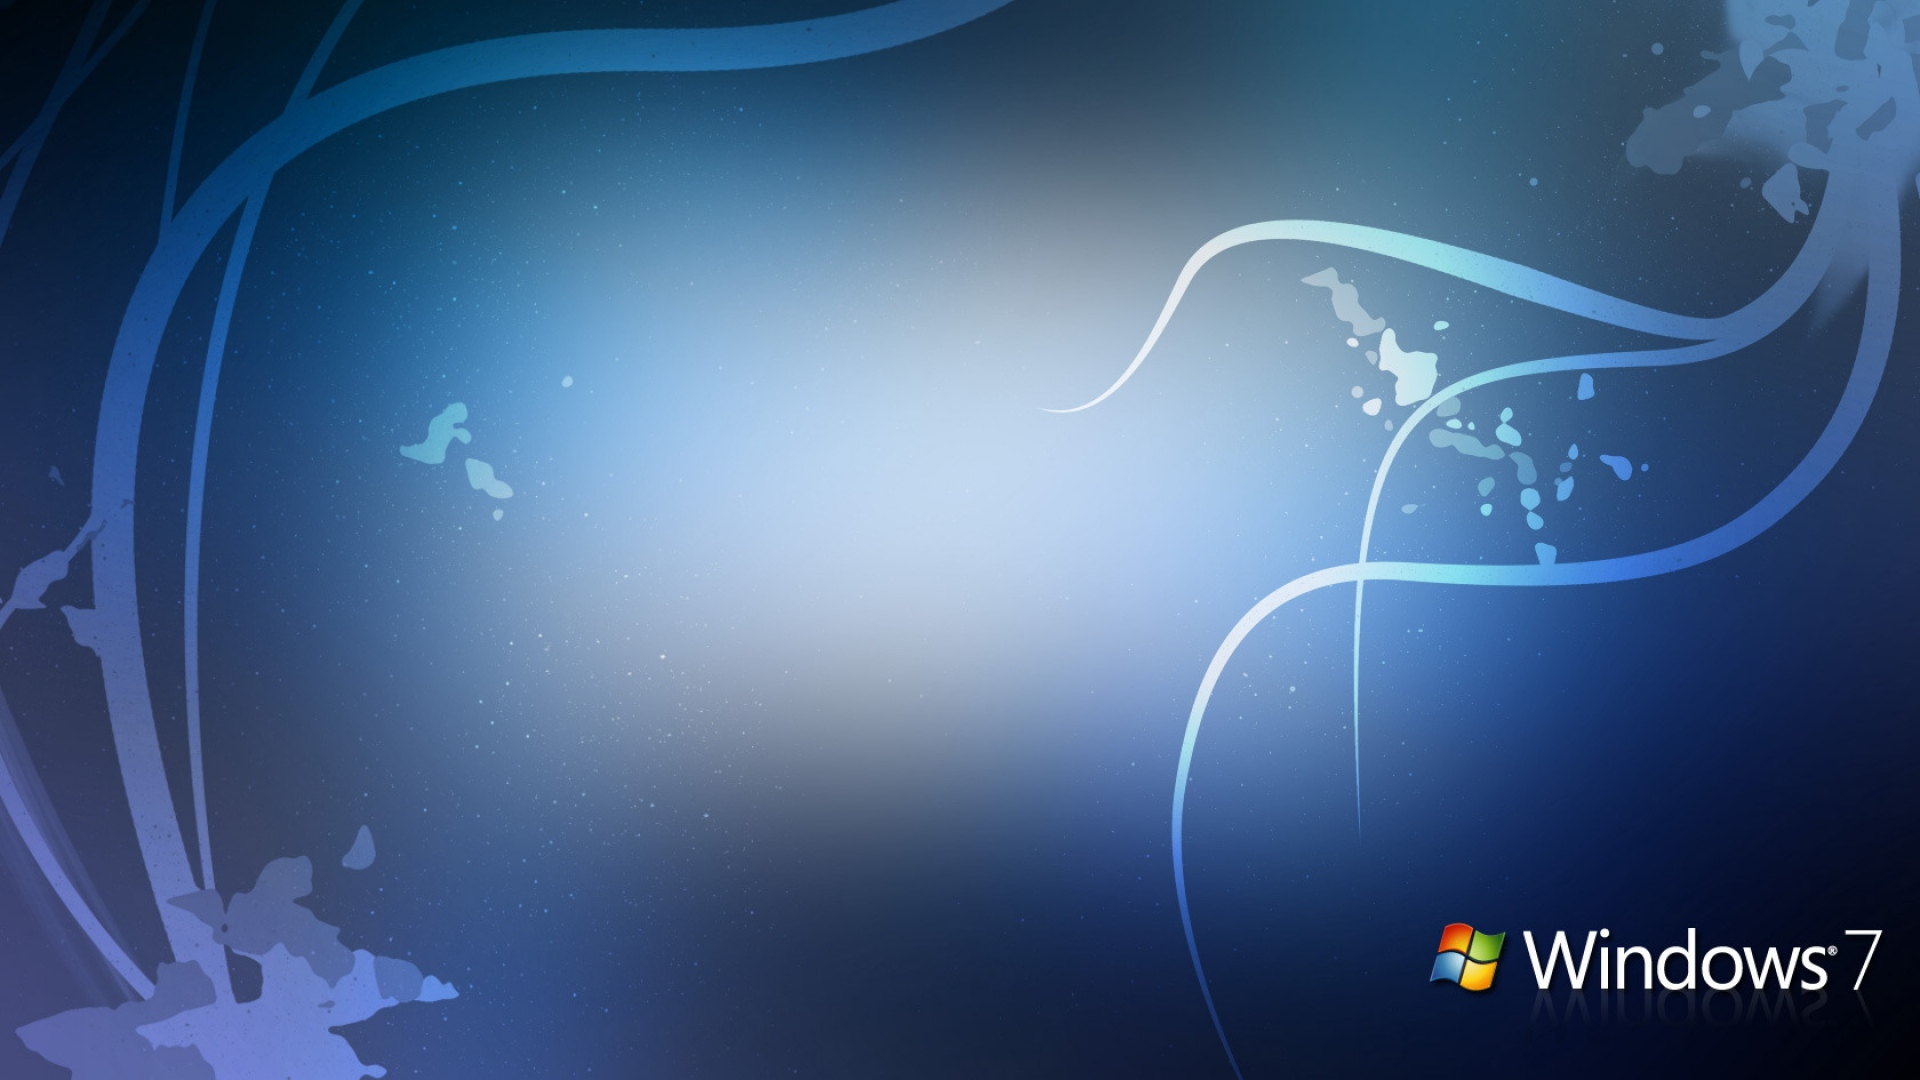 Best Windows 7 Wallpapers 1080p